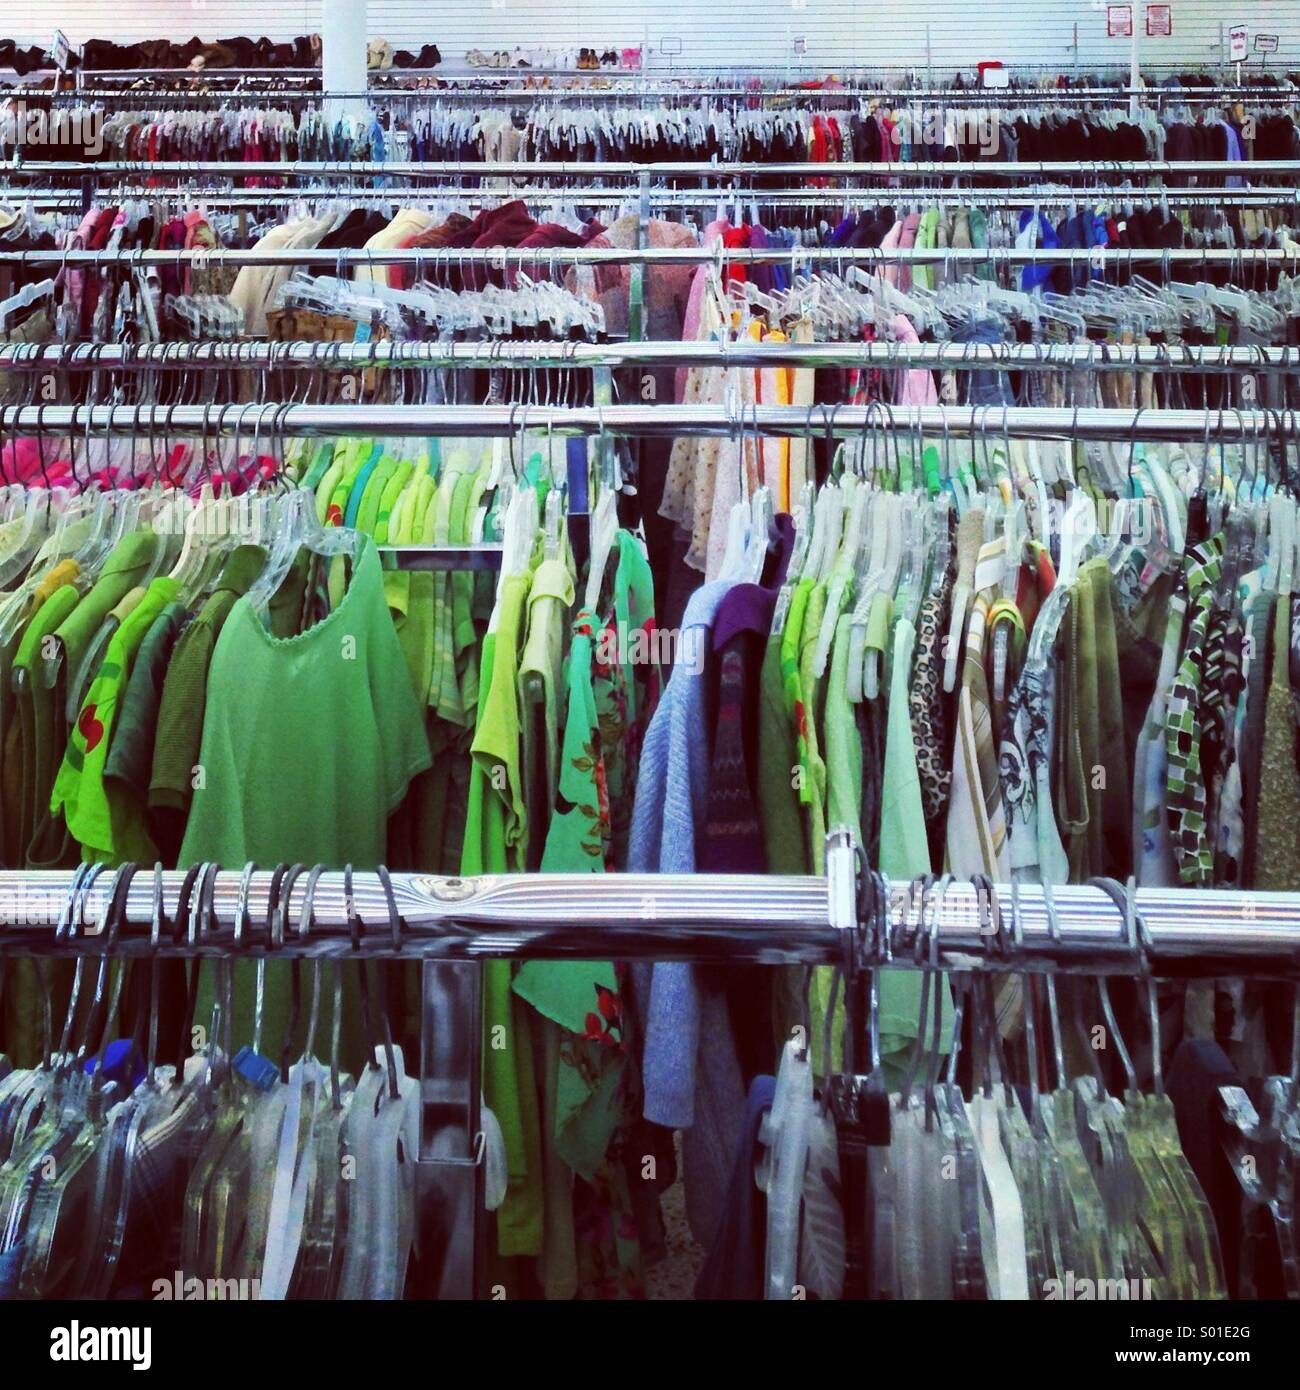 f658cf74f94 Thrift Store Stock Photos   Thrift Store Stock Images - Alamy